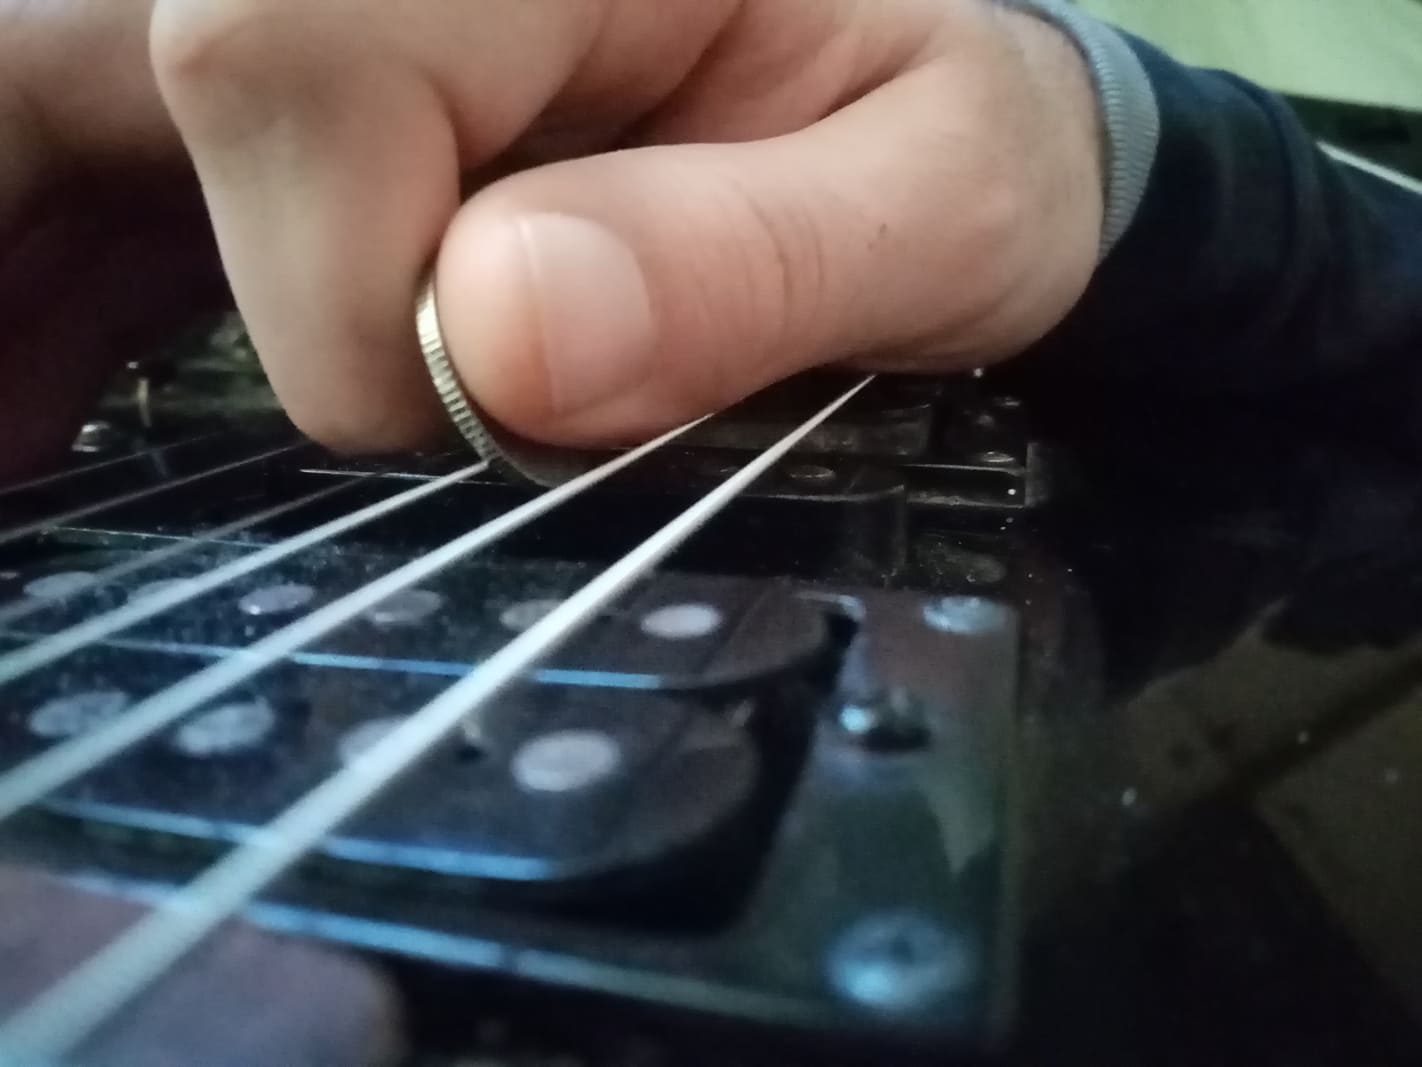 Can You Use Coin As a Guitar Pick? - Guitar Unit